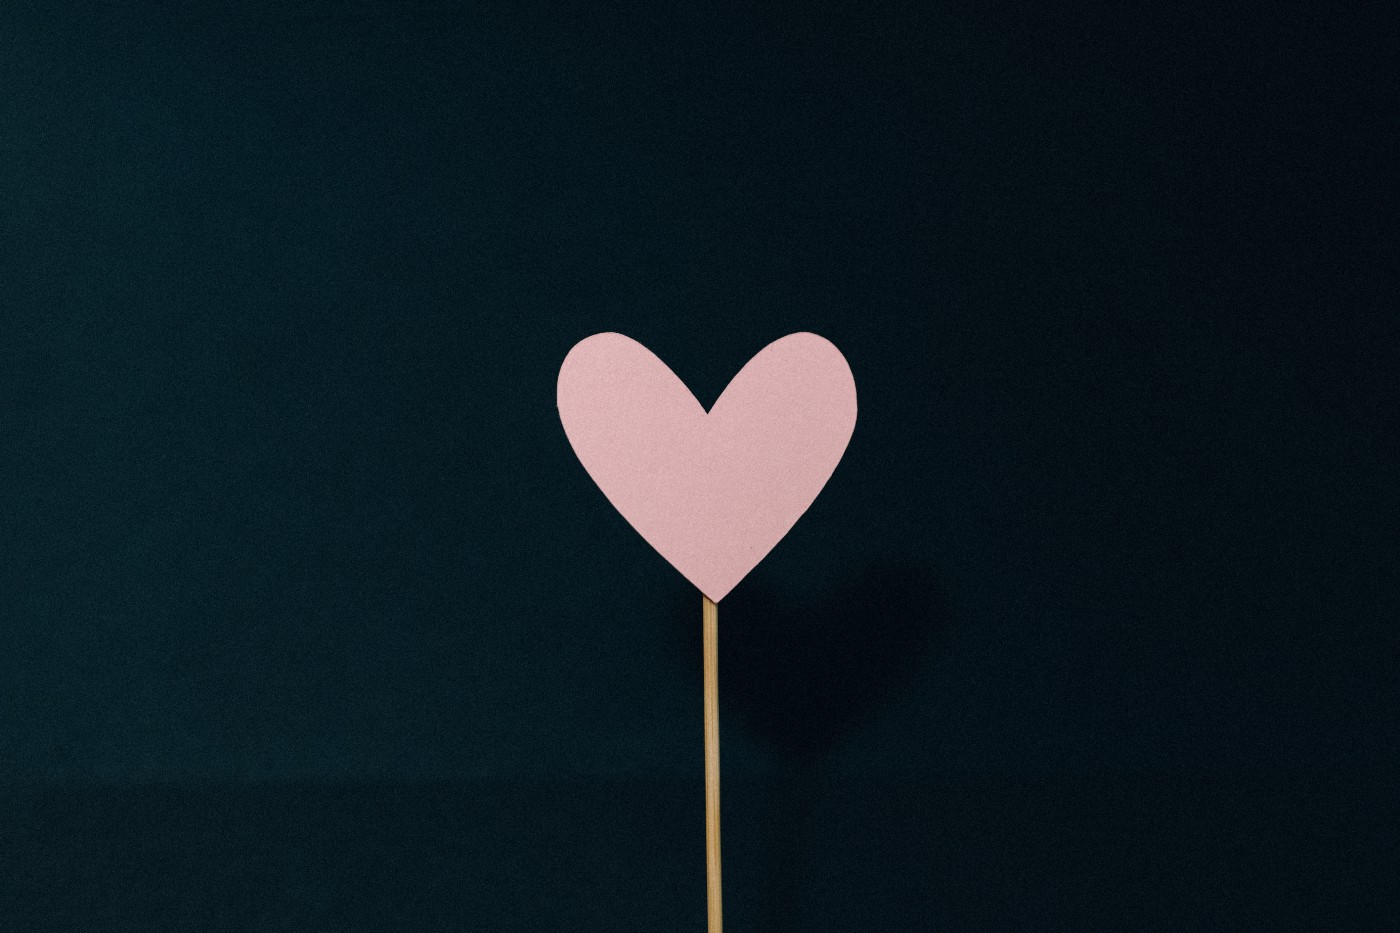 Pink paper heart on black background